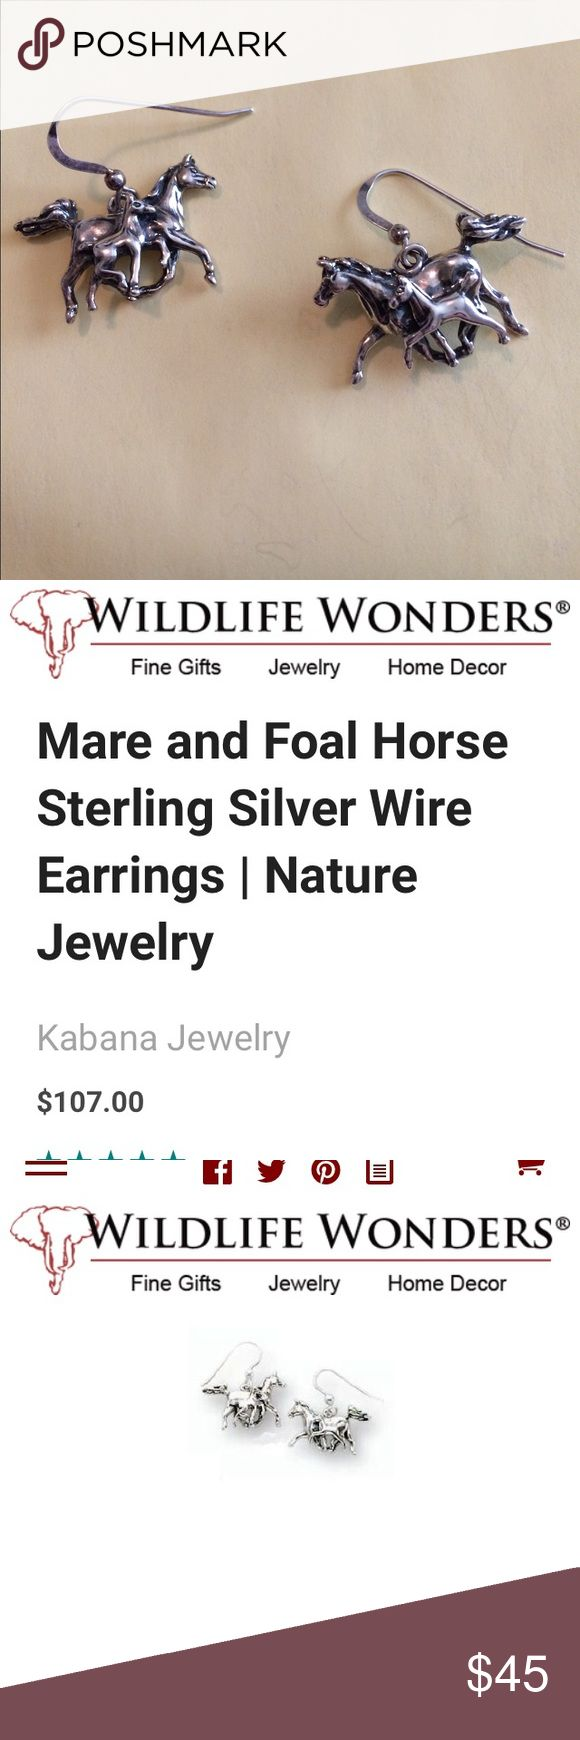 Mate & Foal horse earrings. These exquisitely detailed Mare and Foal Horse Wire Earrings in Sterling Silver from Kabana Jewelry offer a unique and heartwarming expression of natural beauty that goes with any look or social engagement. The mother and baby horses are rendered in marvelous .925 sterling silver by the artists of Kabana to create a singular fashion accent and showcase of your love for these graceful and loyal creatures. Each piece is handcrafted with pride in the USA, and makes a…